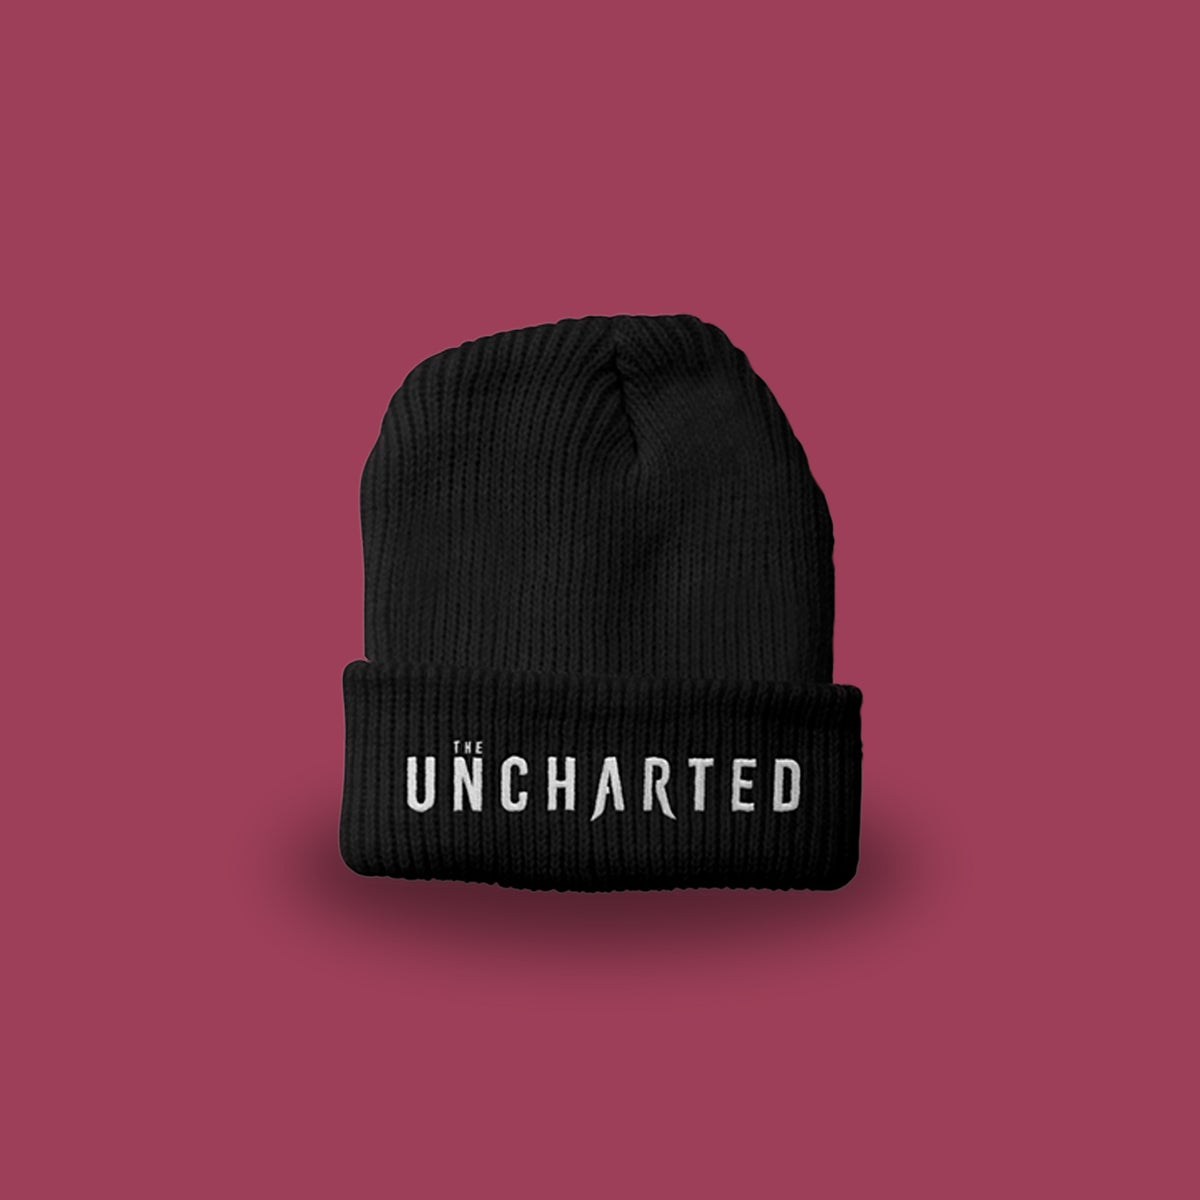 Image of 'THE UNCHARTED' BEANIE